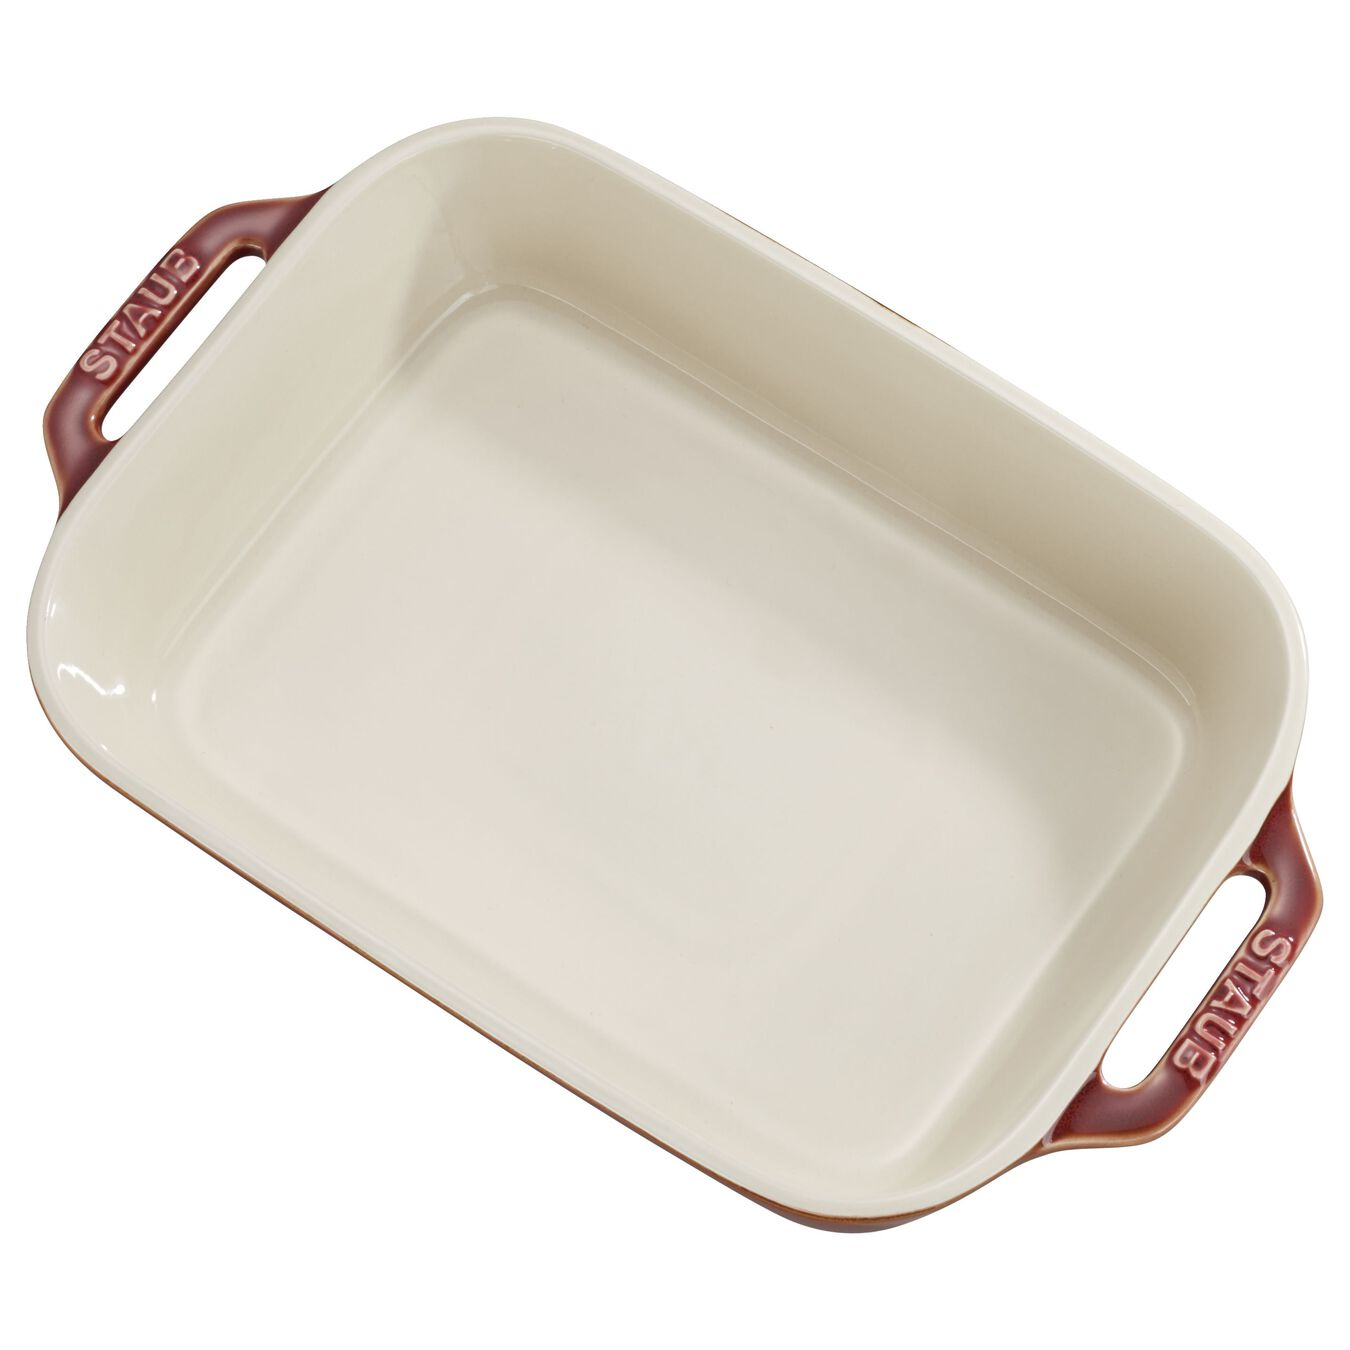 2-pcs square Ensemble plats de cuisson pour le four, Red,,large 1